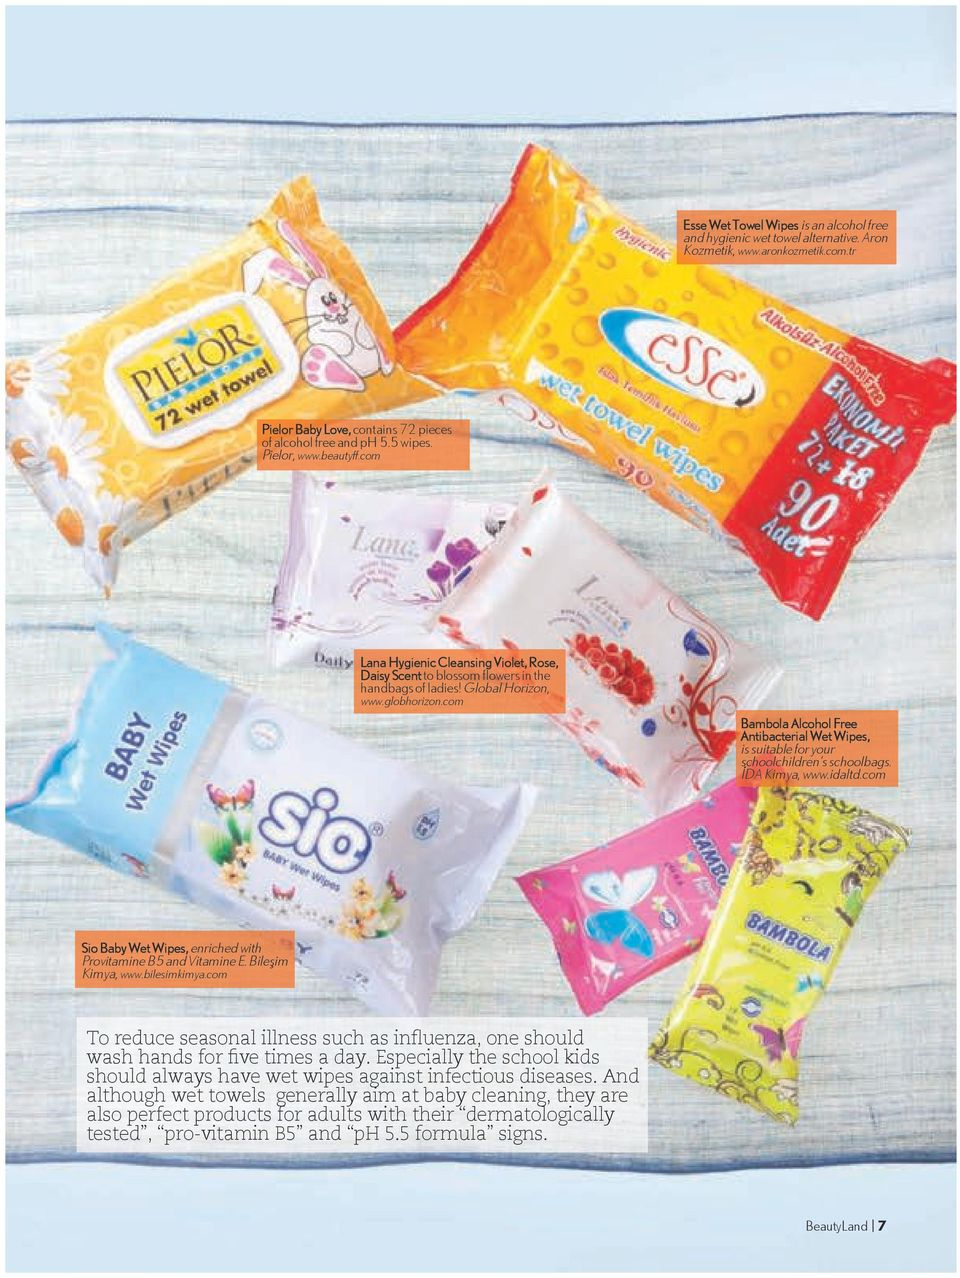 com Bambola Alcohol Free Antibacterial Wet Wipes, is suitable for your schoolchildren s schoolbags. İDA Kimya, www.idaltd.com Sio Baby Wet Wipes, enriched with Provitamine B5 and Vitamine E.